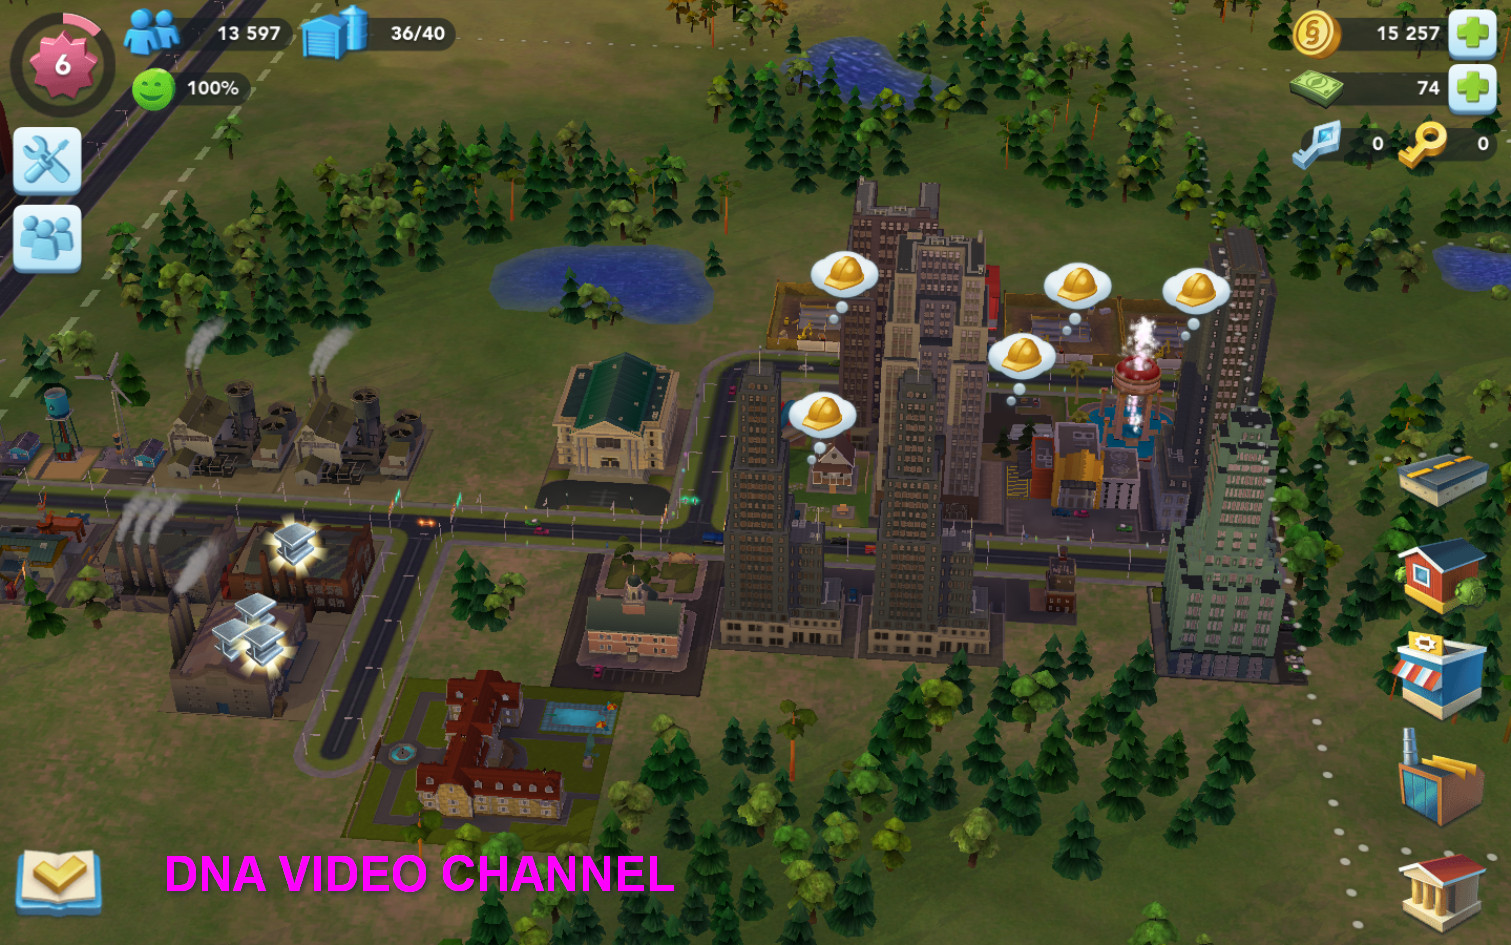 Free offline games for Android - SimCity Buildit city